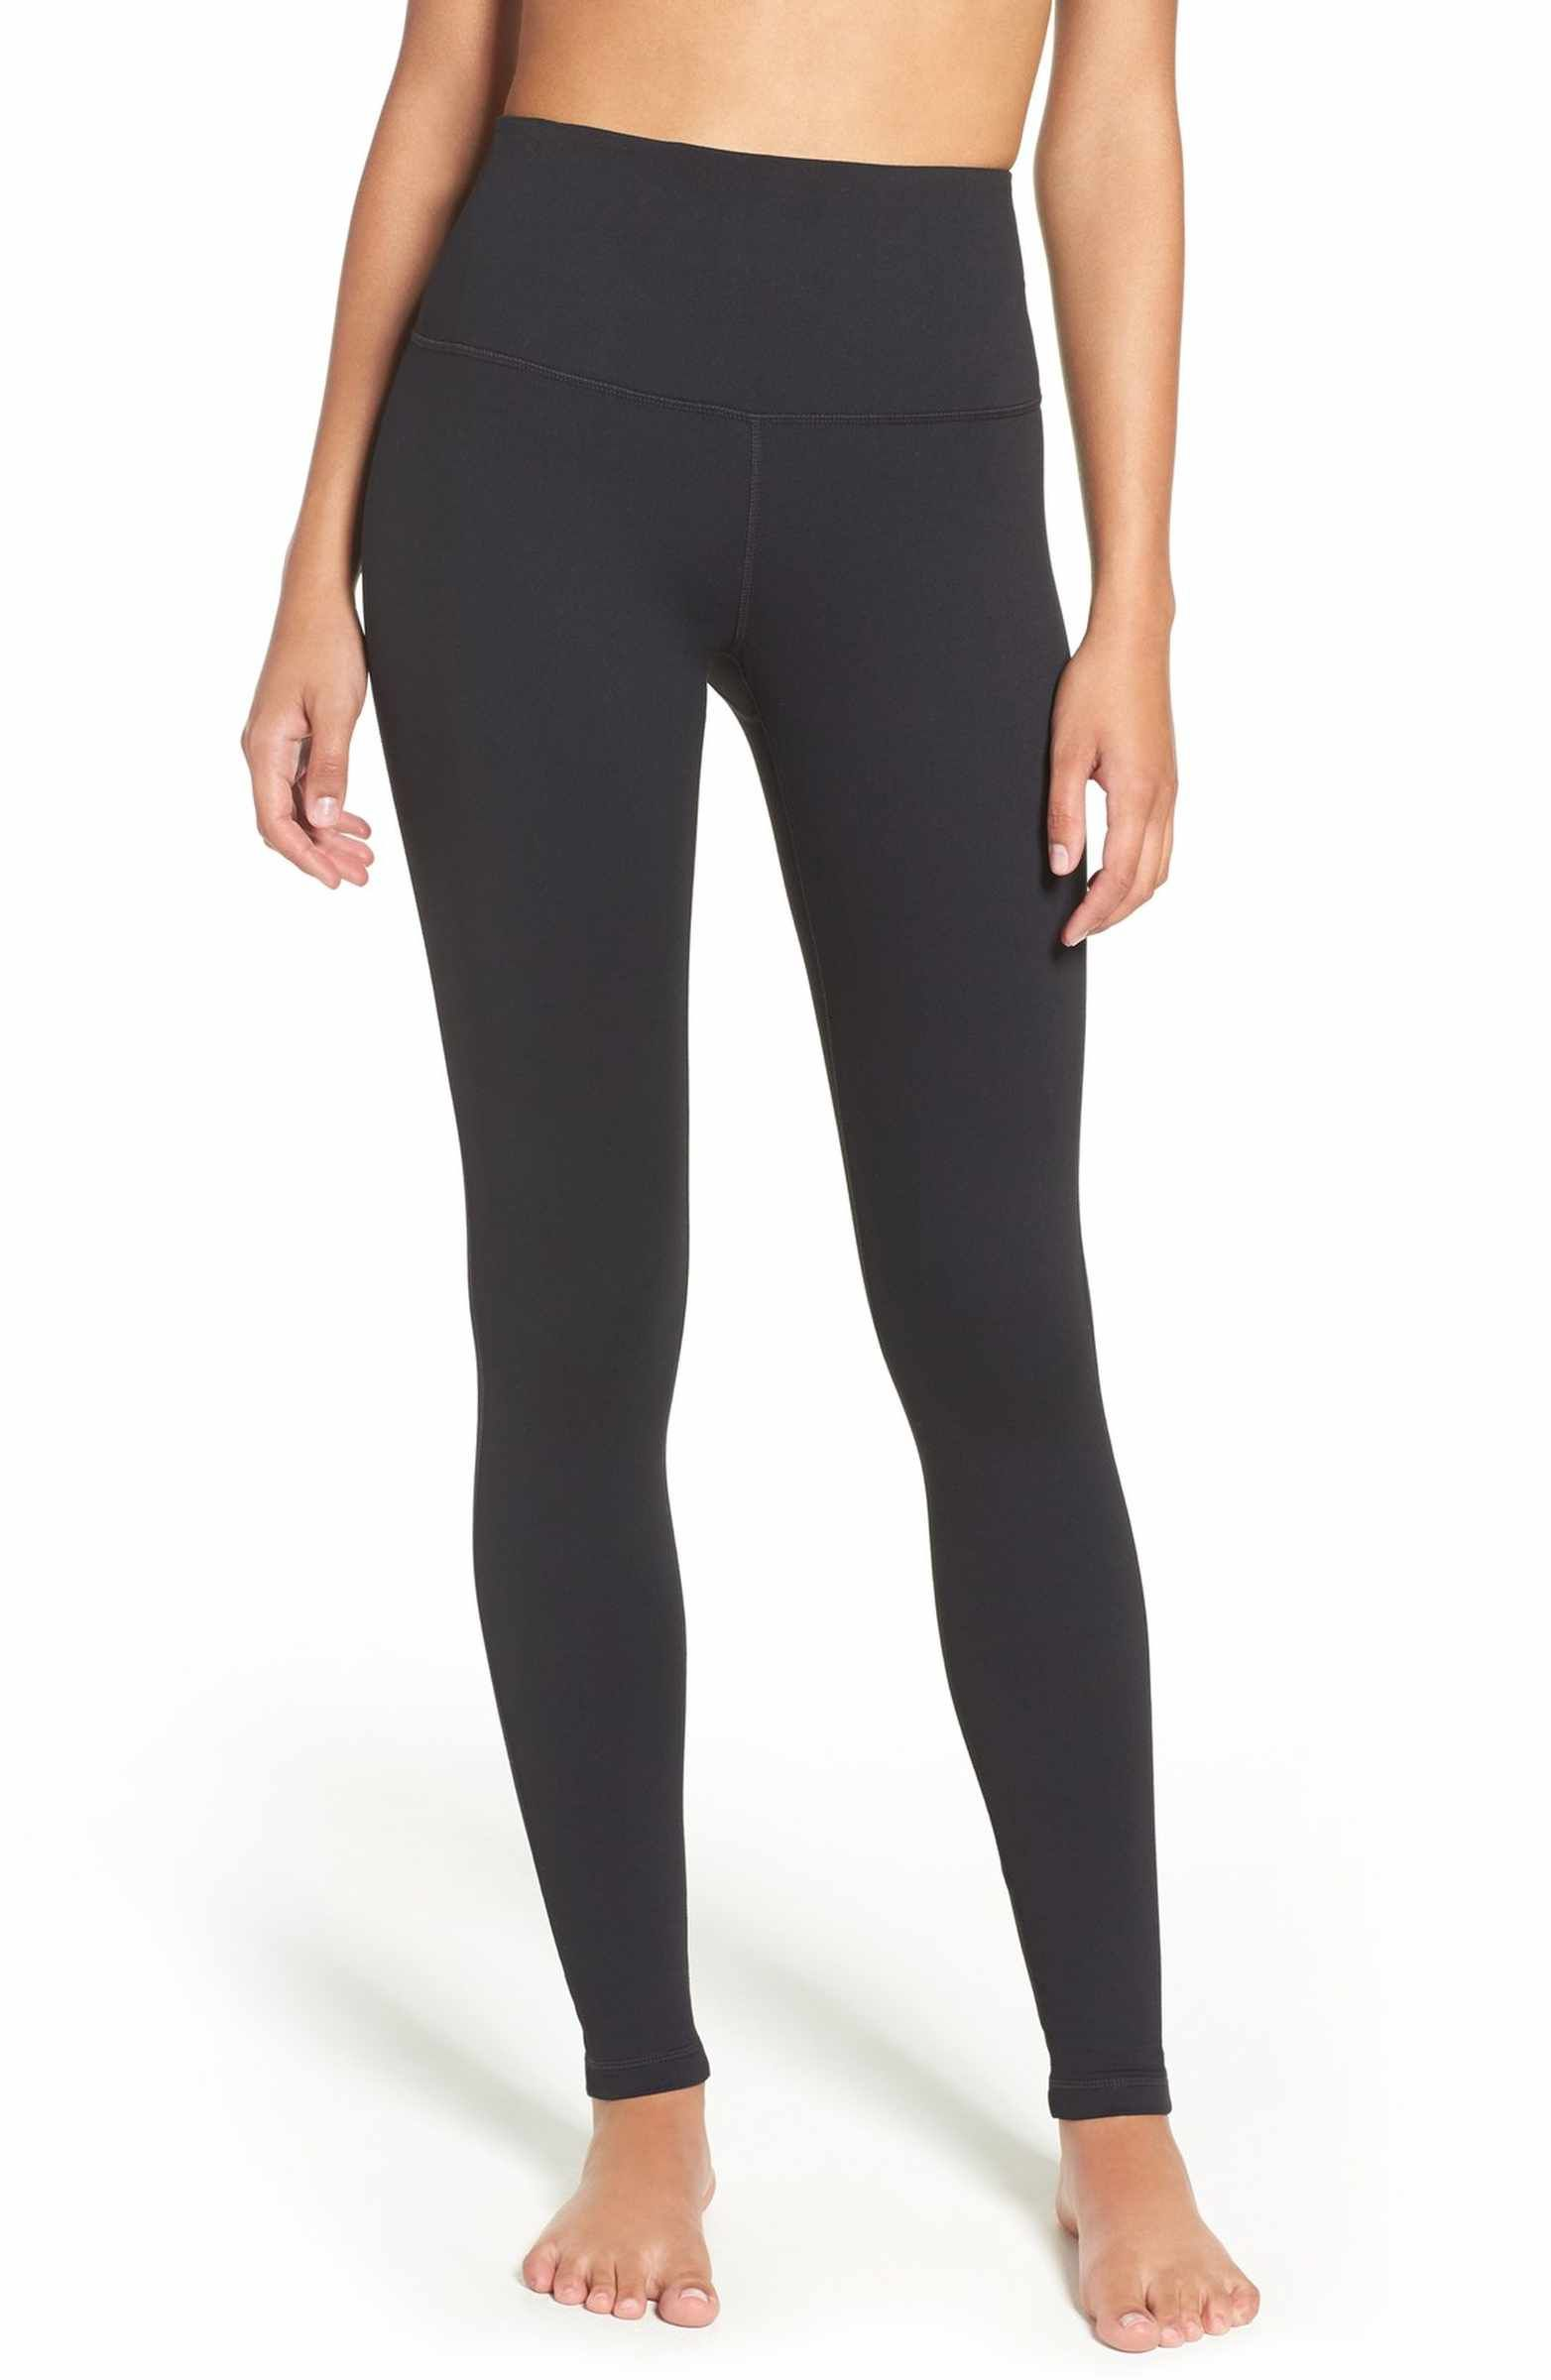 80d1013d9217fe Main Image - Zella Live In High Waist Leggings | I'd Wear That ...